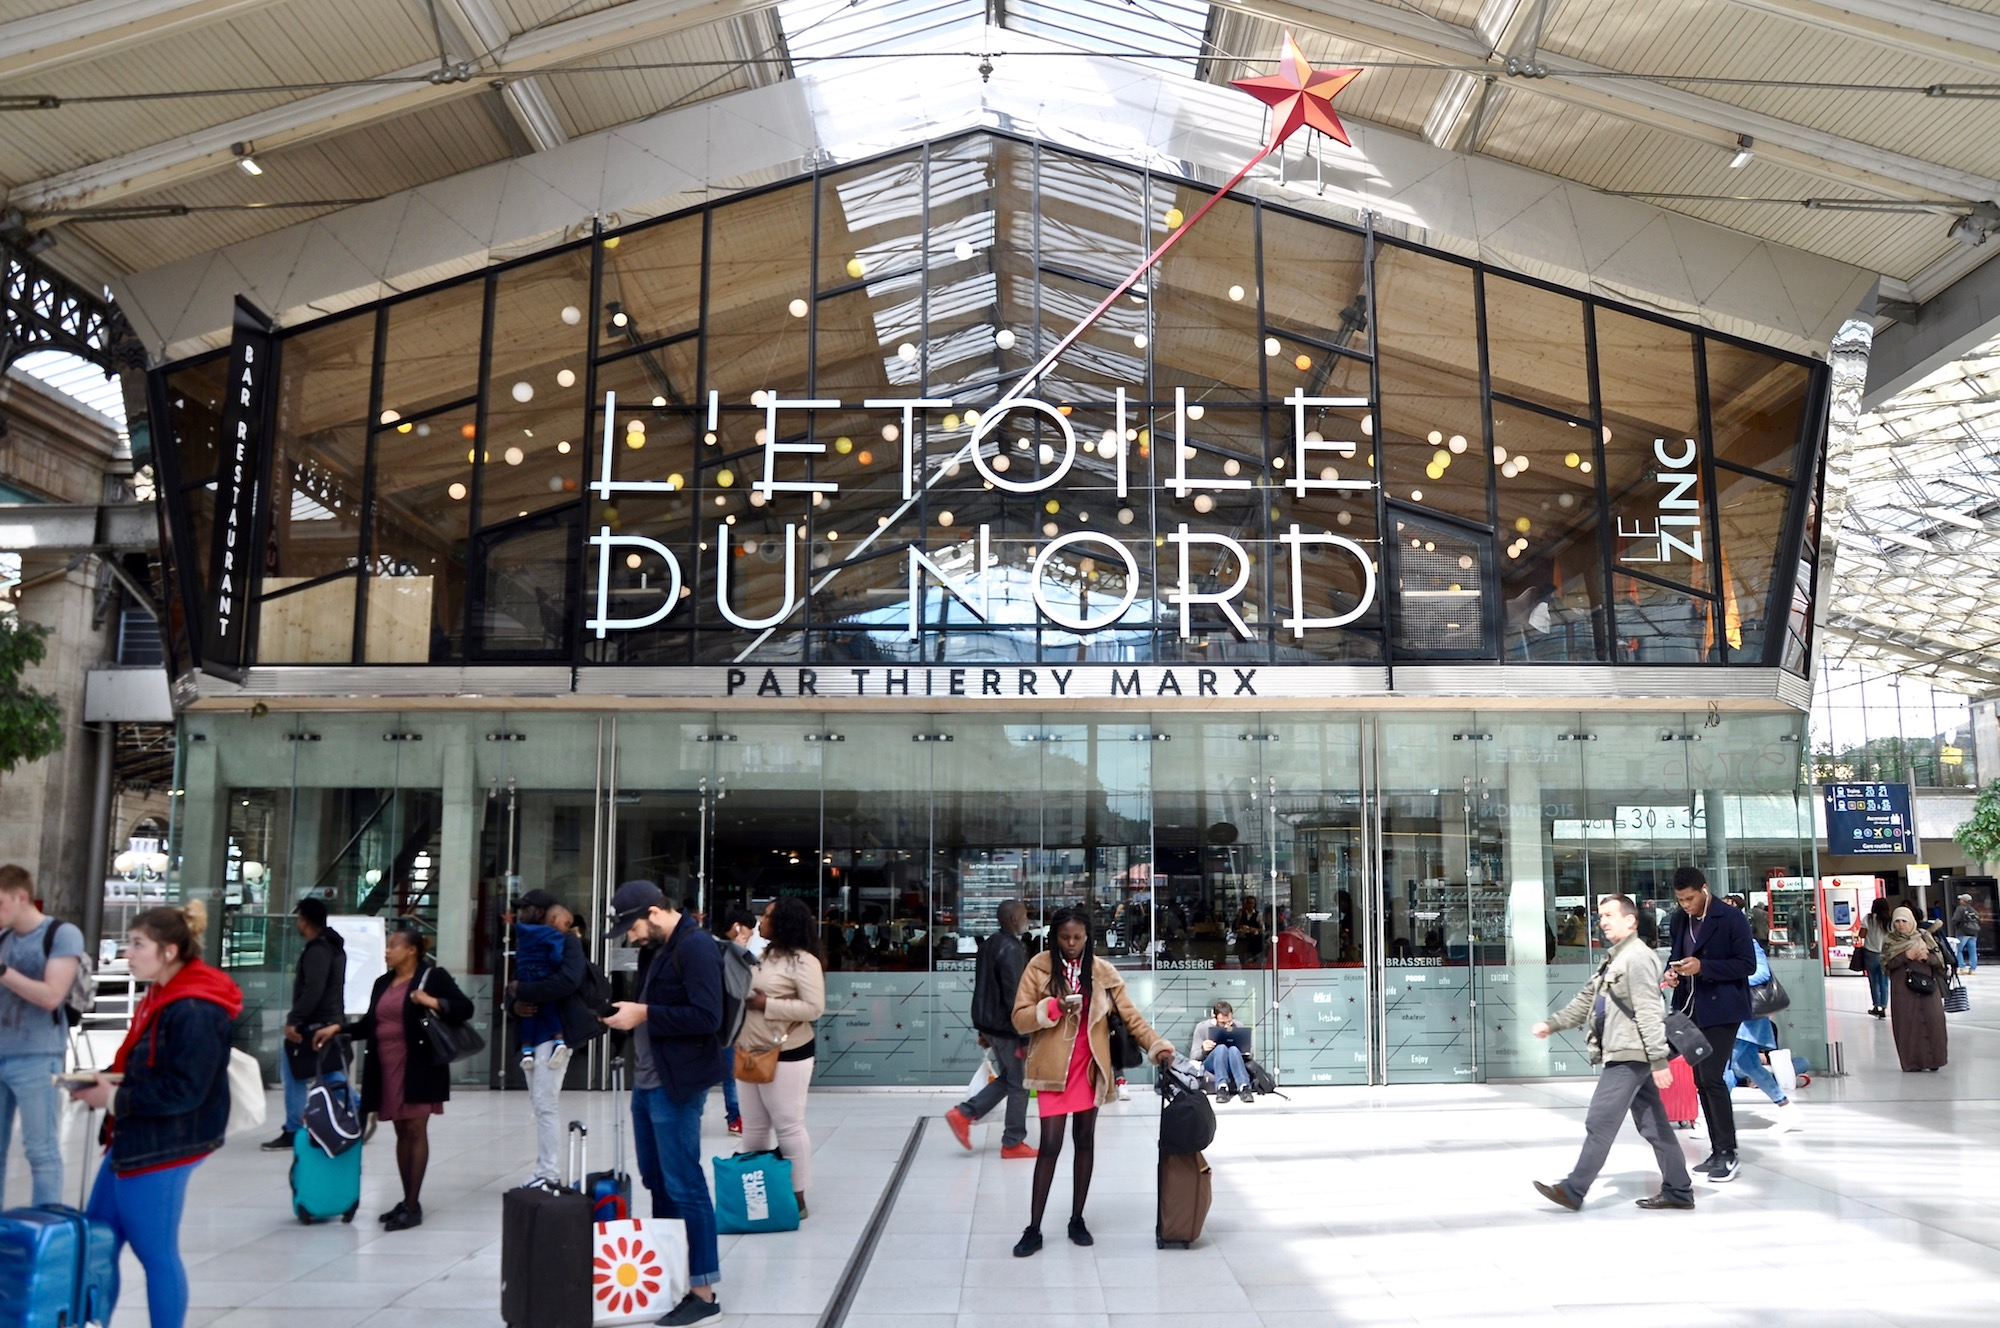 Paris' Gare du Nord station has a new restaurant, L'Etoile du Nord by three-starred chef Thierry Marx.